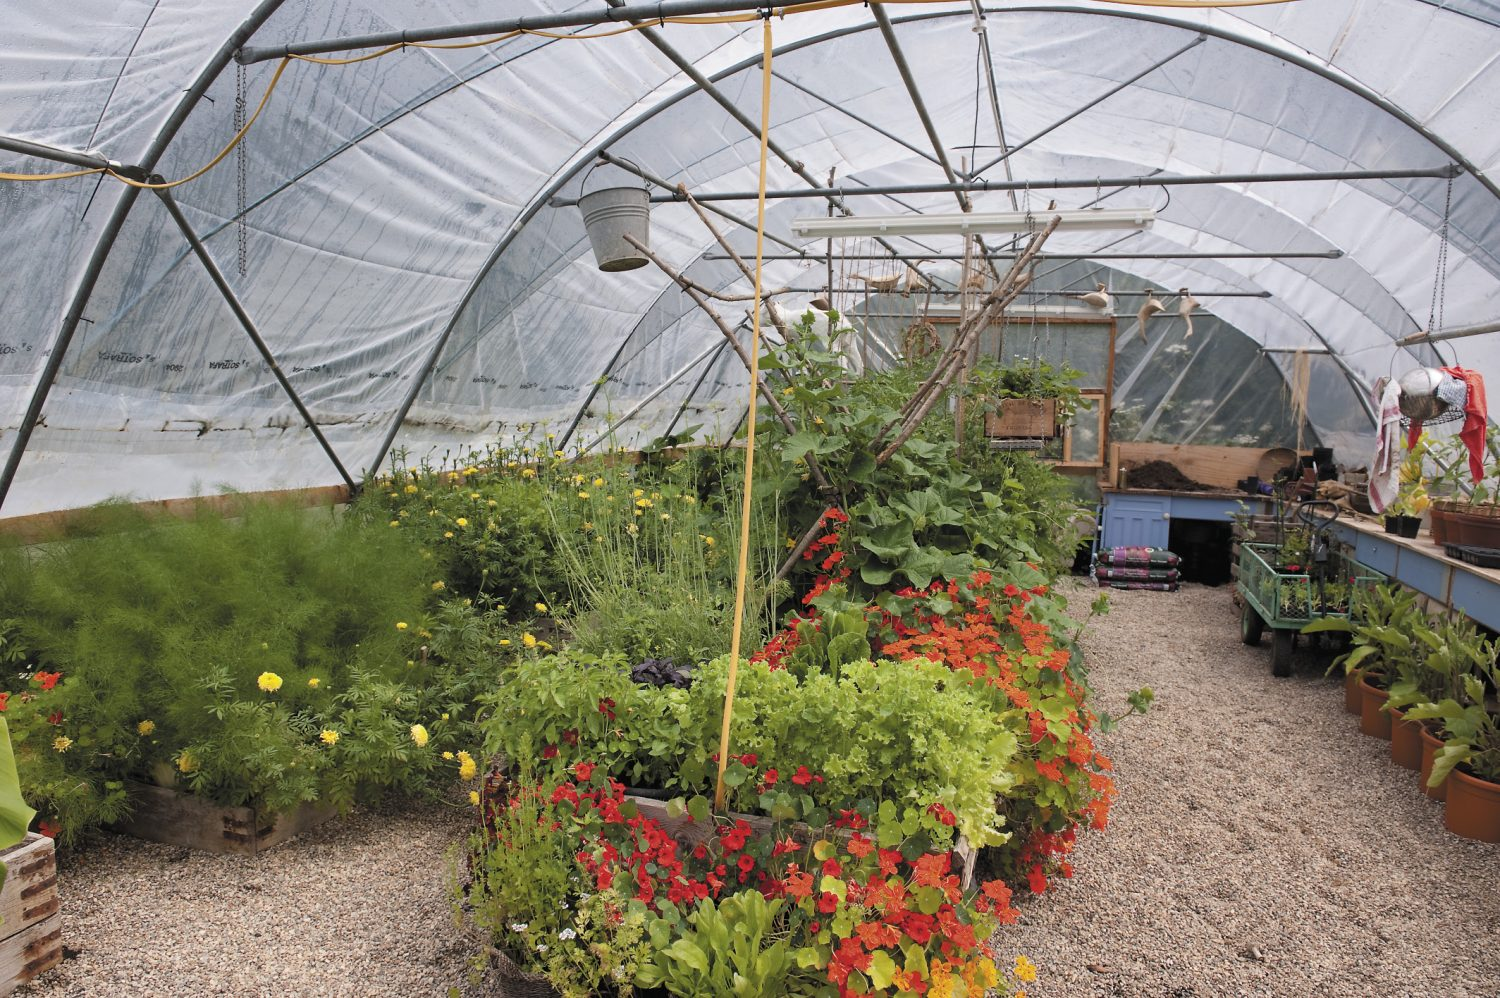 Lizzie's favourite spring haunt, the polytunnel, can be found across the stream, brimming with salad crops and yet more flowers Left: The crimson former beach hut, that belonged to Lizzie's father, adds a pleasing pop of colour amongst the garden foliage